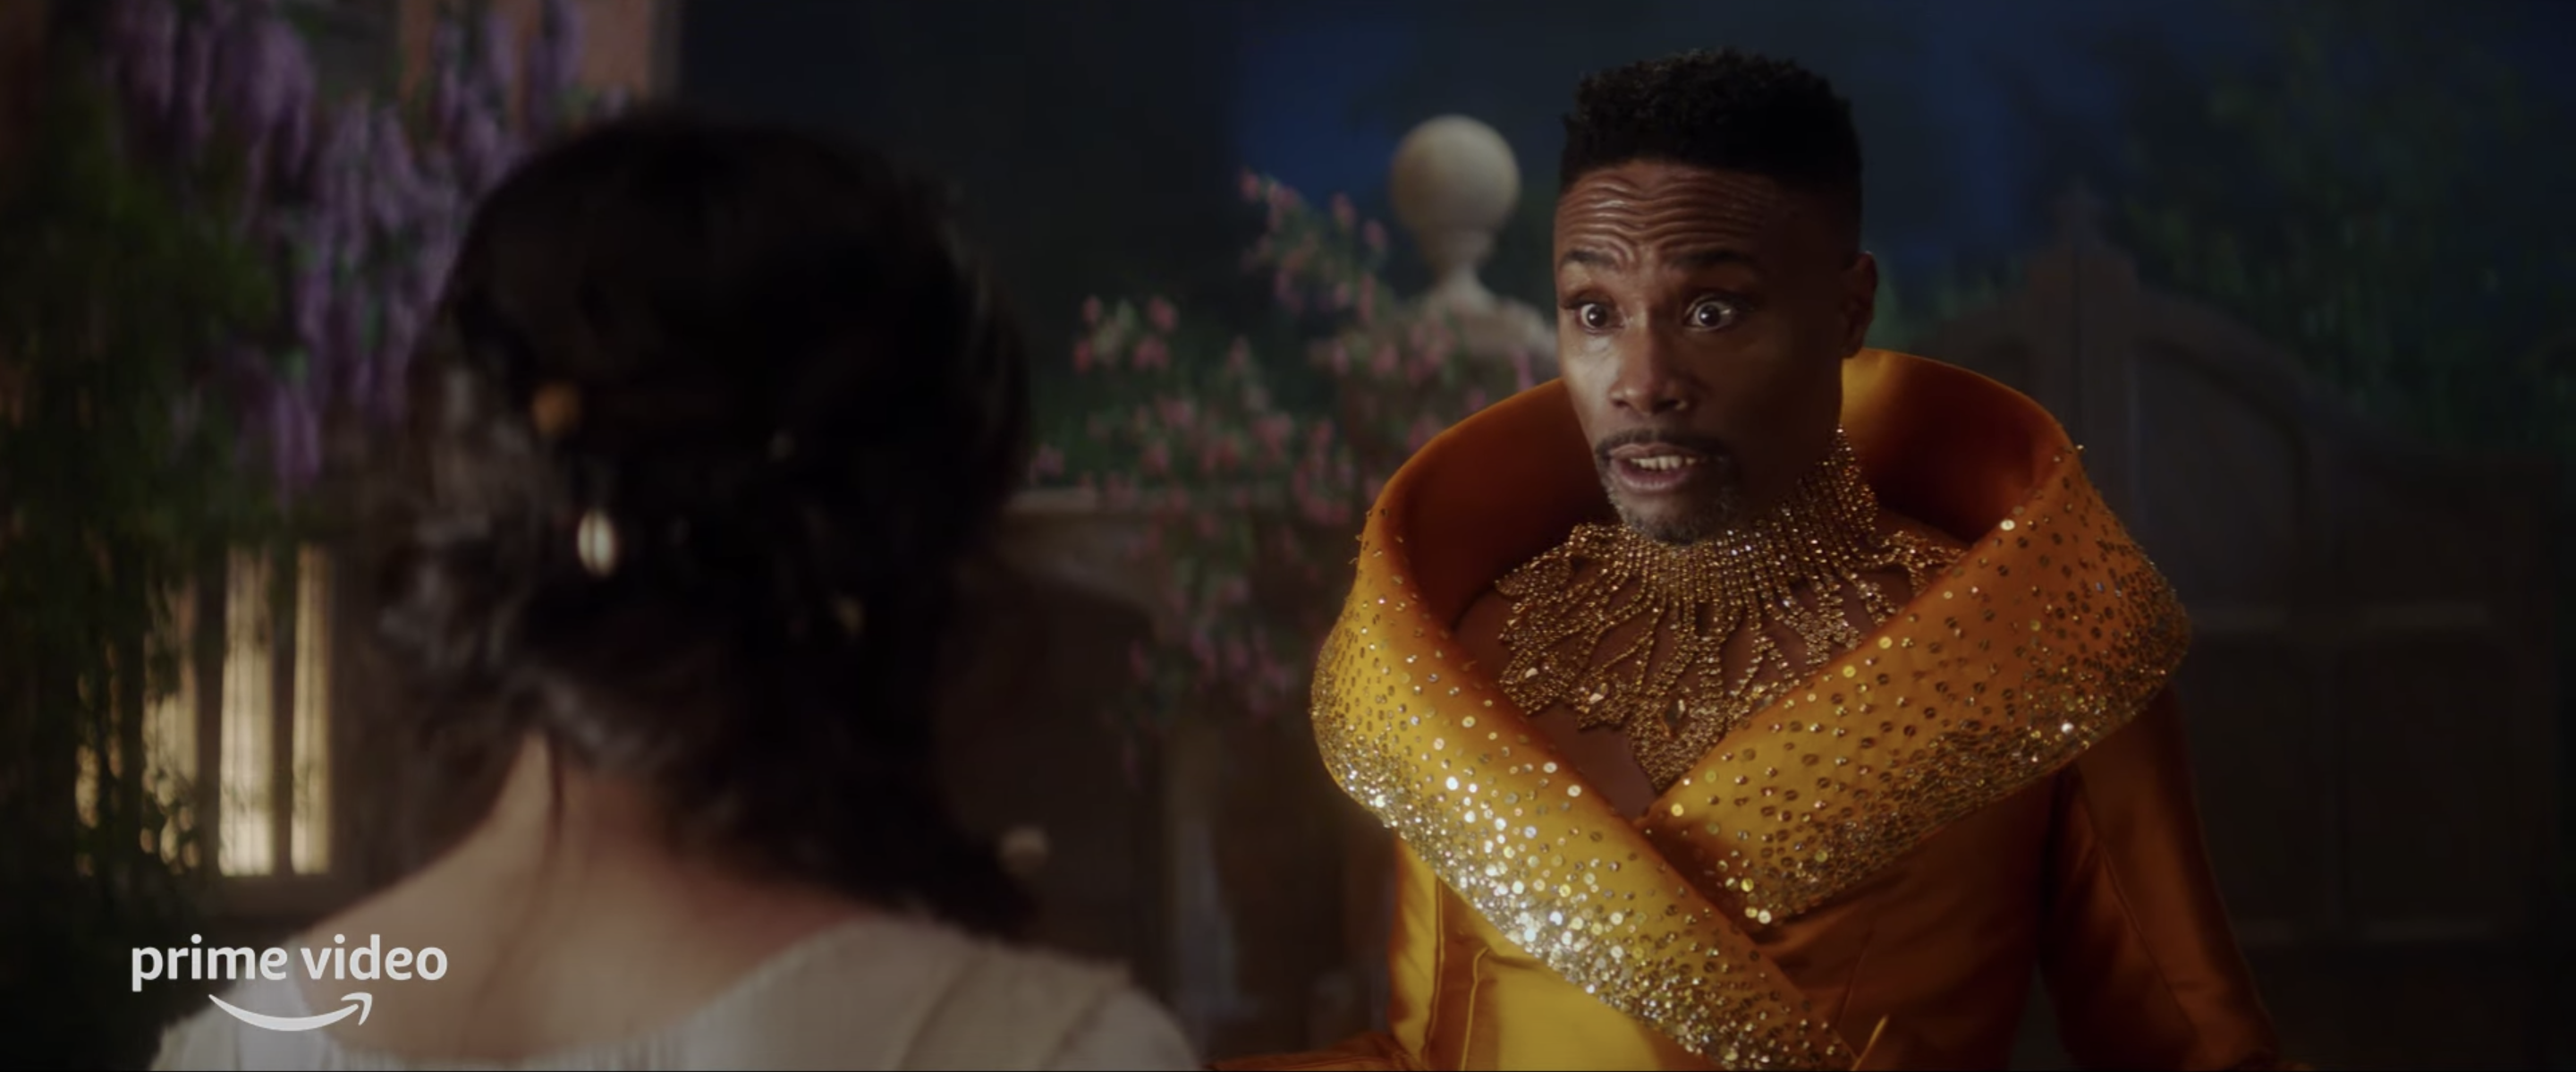 """Billy Porter (the Fairy Godmother) questions Camila Cabello (Cinderella) on set of Amazon Prime Video's """"Cinderella"""""""